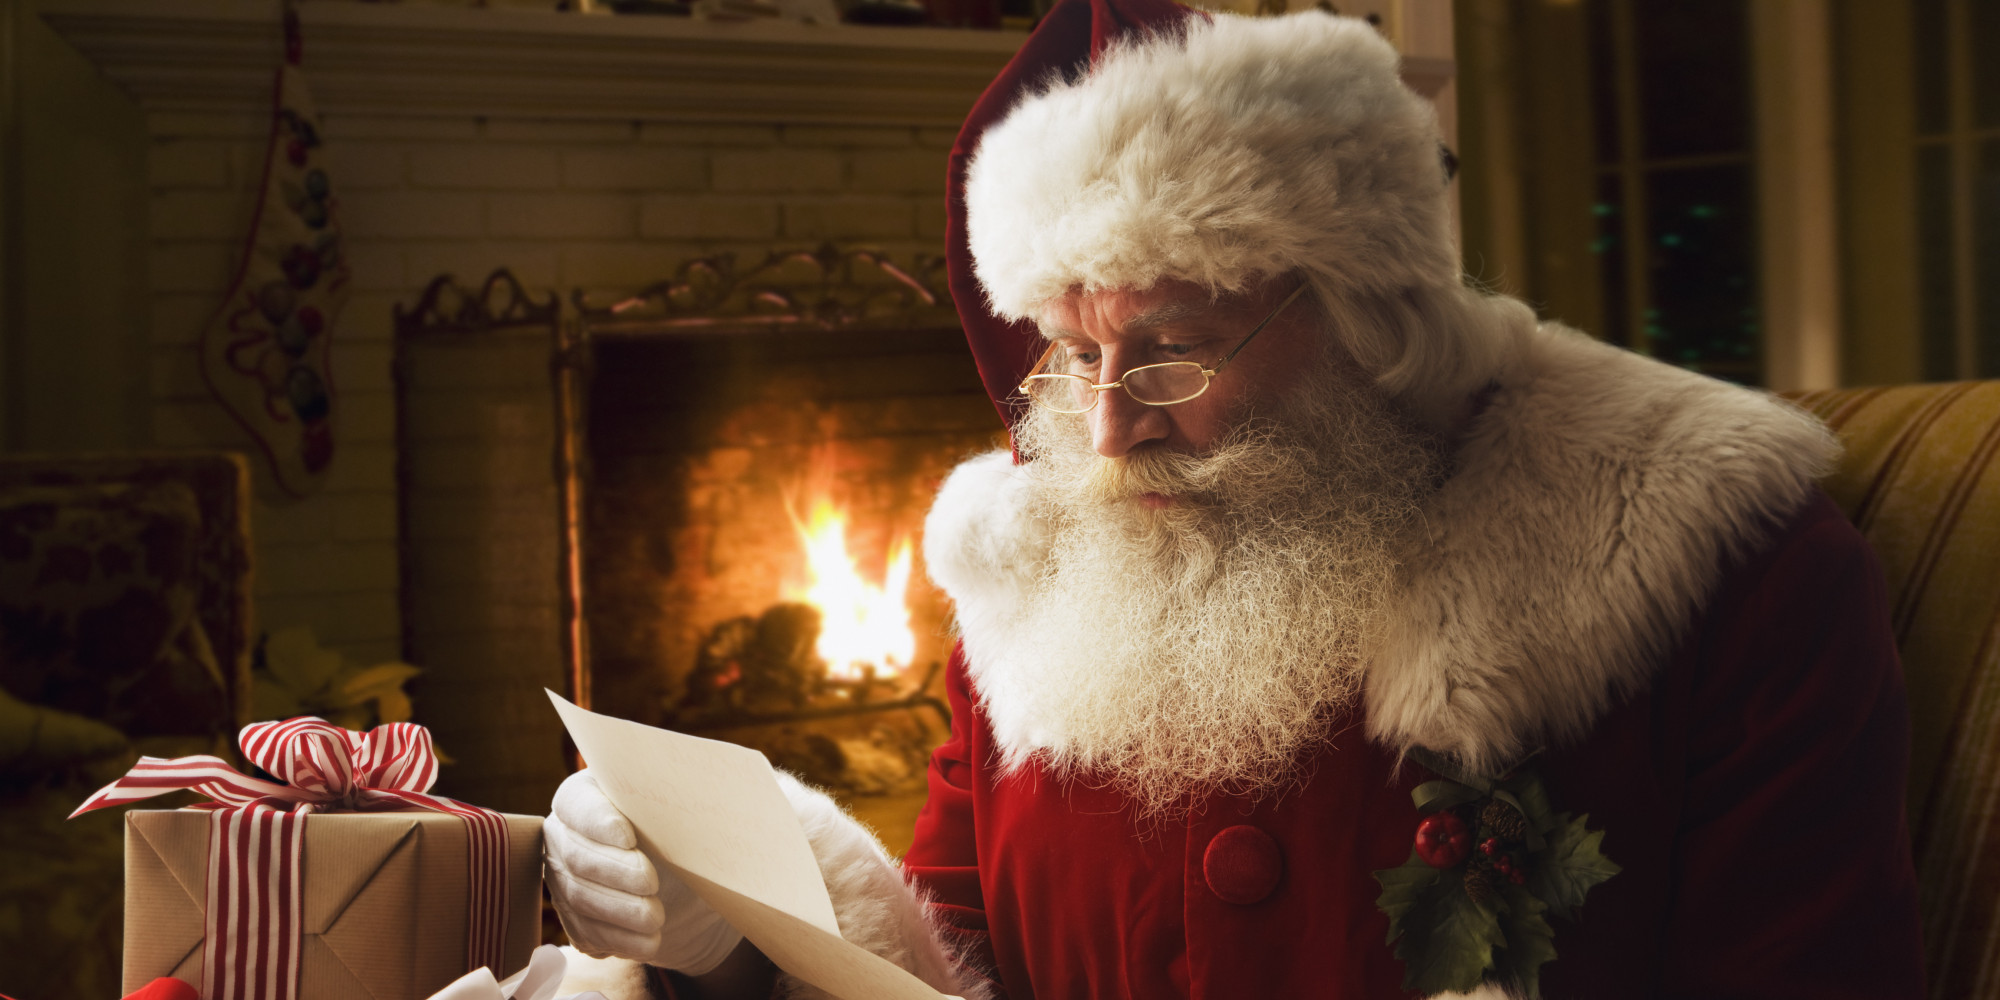 What Santa Claus Can Teach The Rest Of Us About Living Well